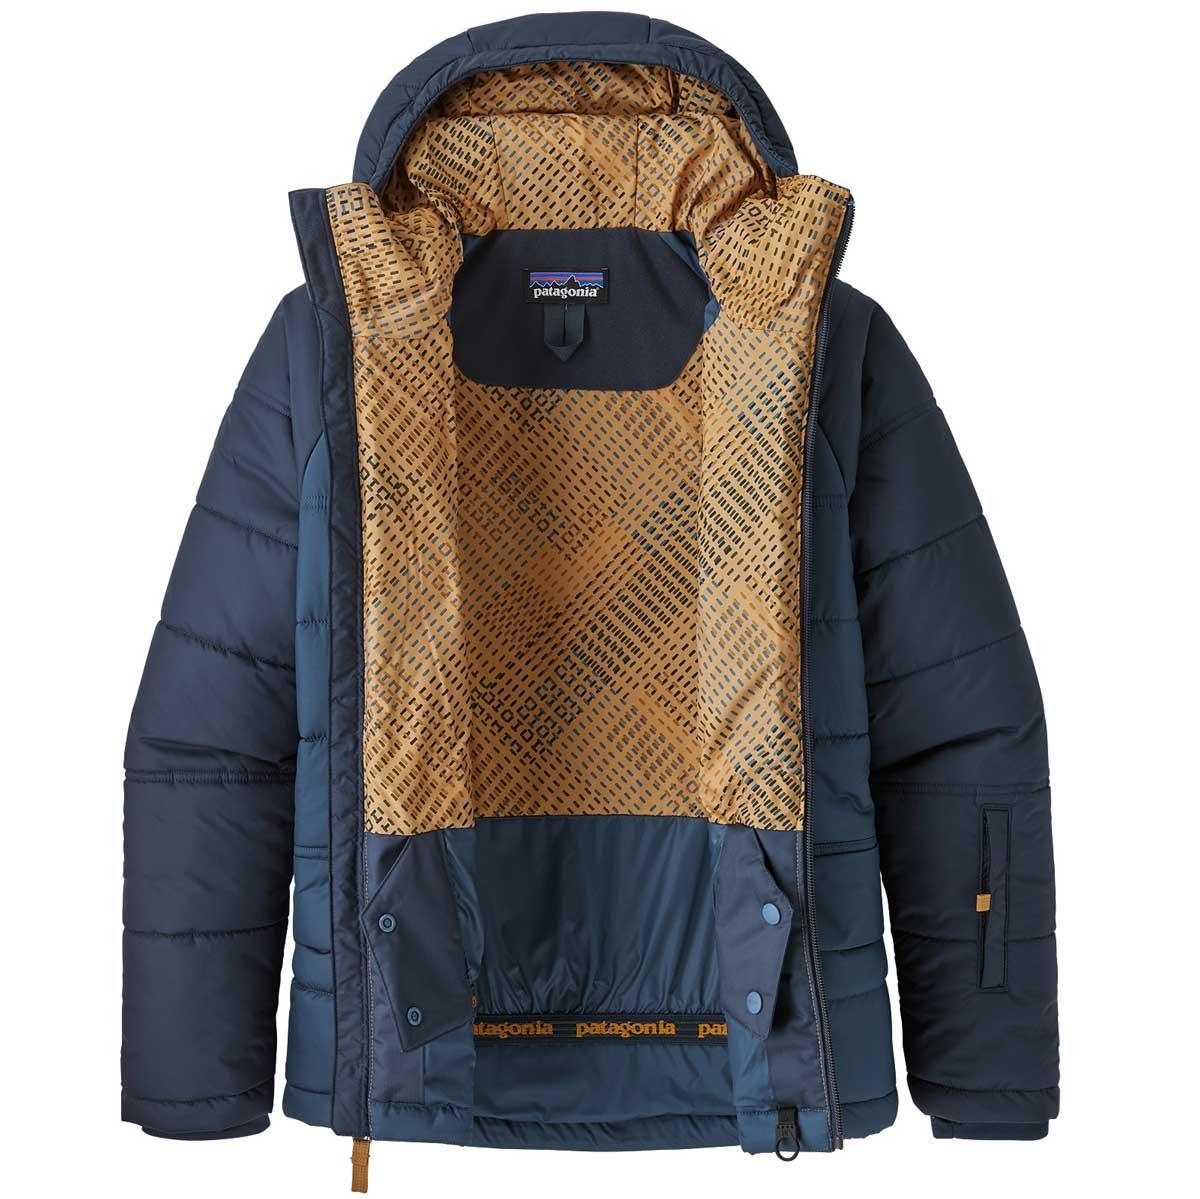 Patagonia boy's Pine Grove Jacket in Stone Blue open view